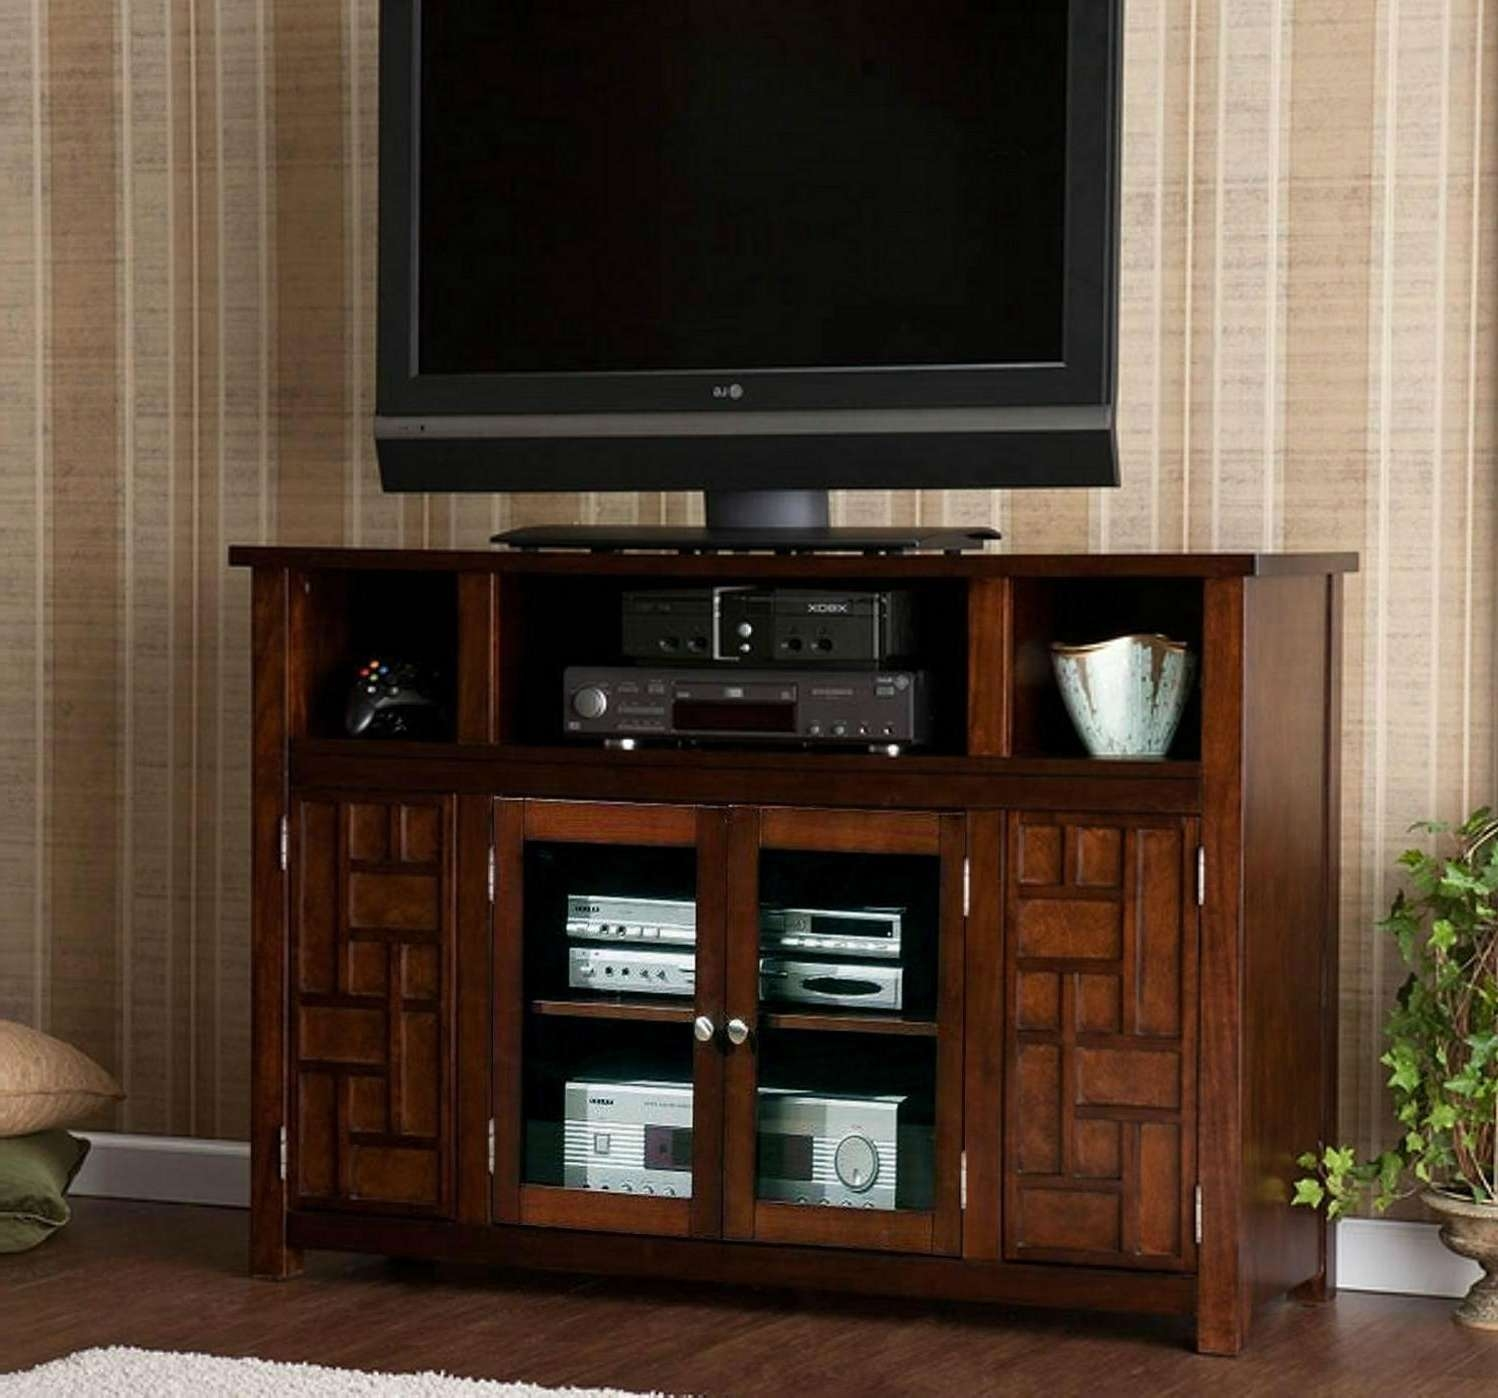 Ordinaire 48 Inch Walnut Funky Doors Retro Tv Cabinet Wood Furniture U2013 Wd With Regard  To Funky